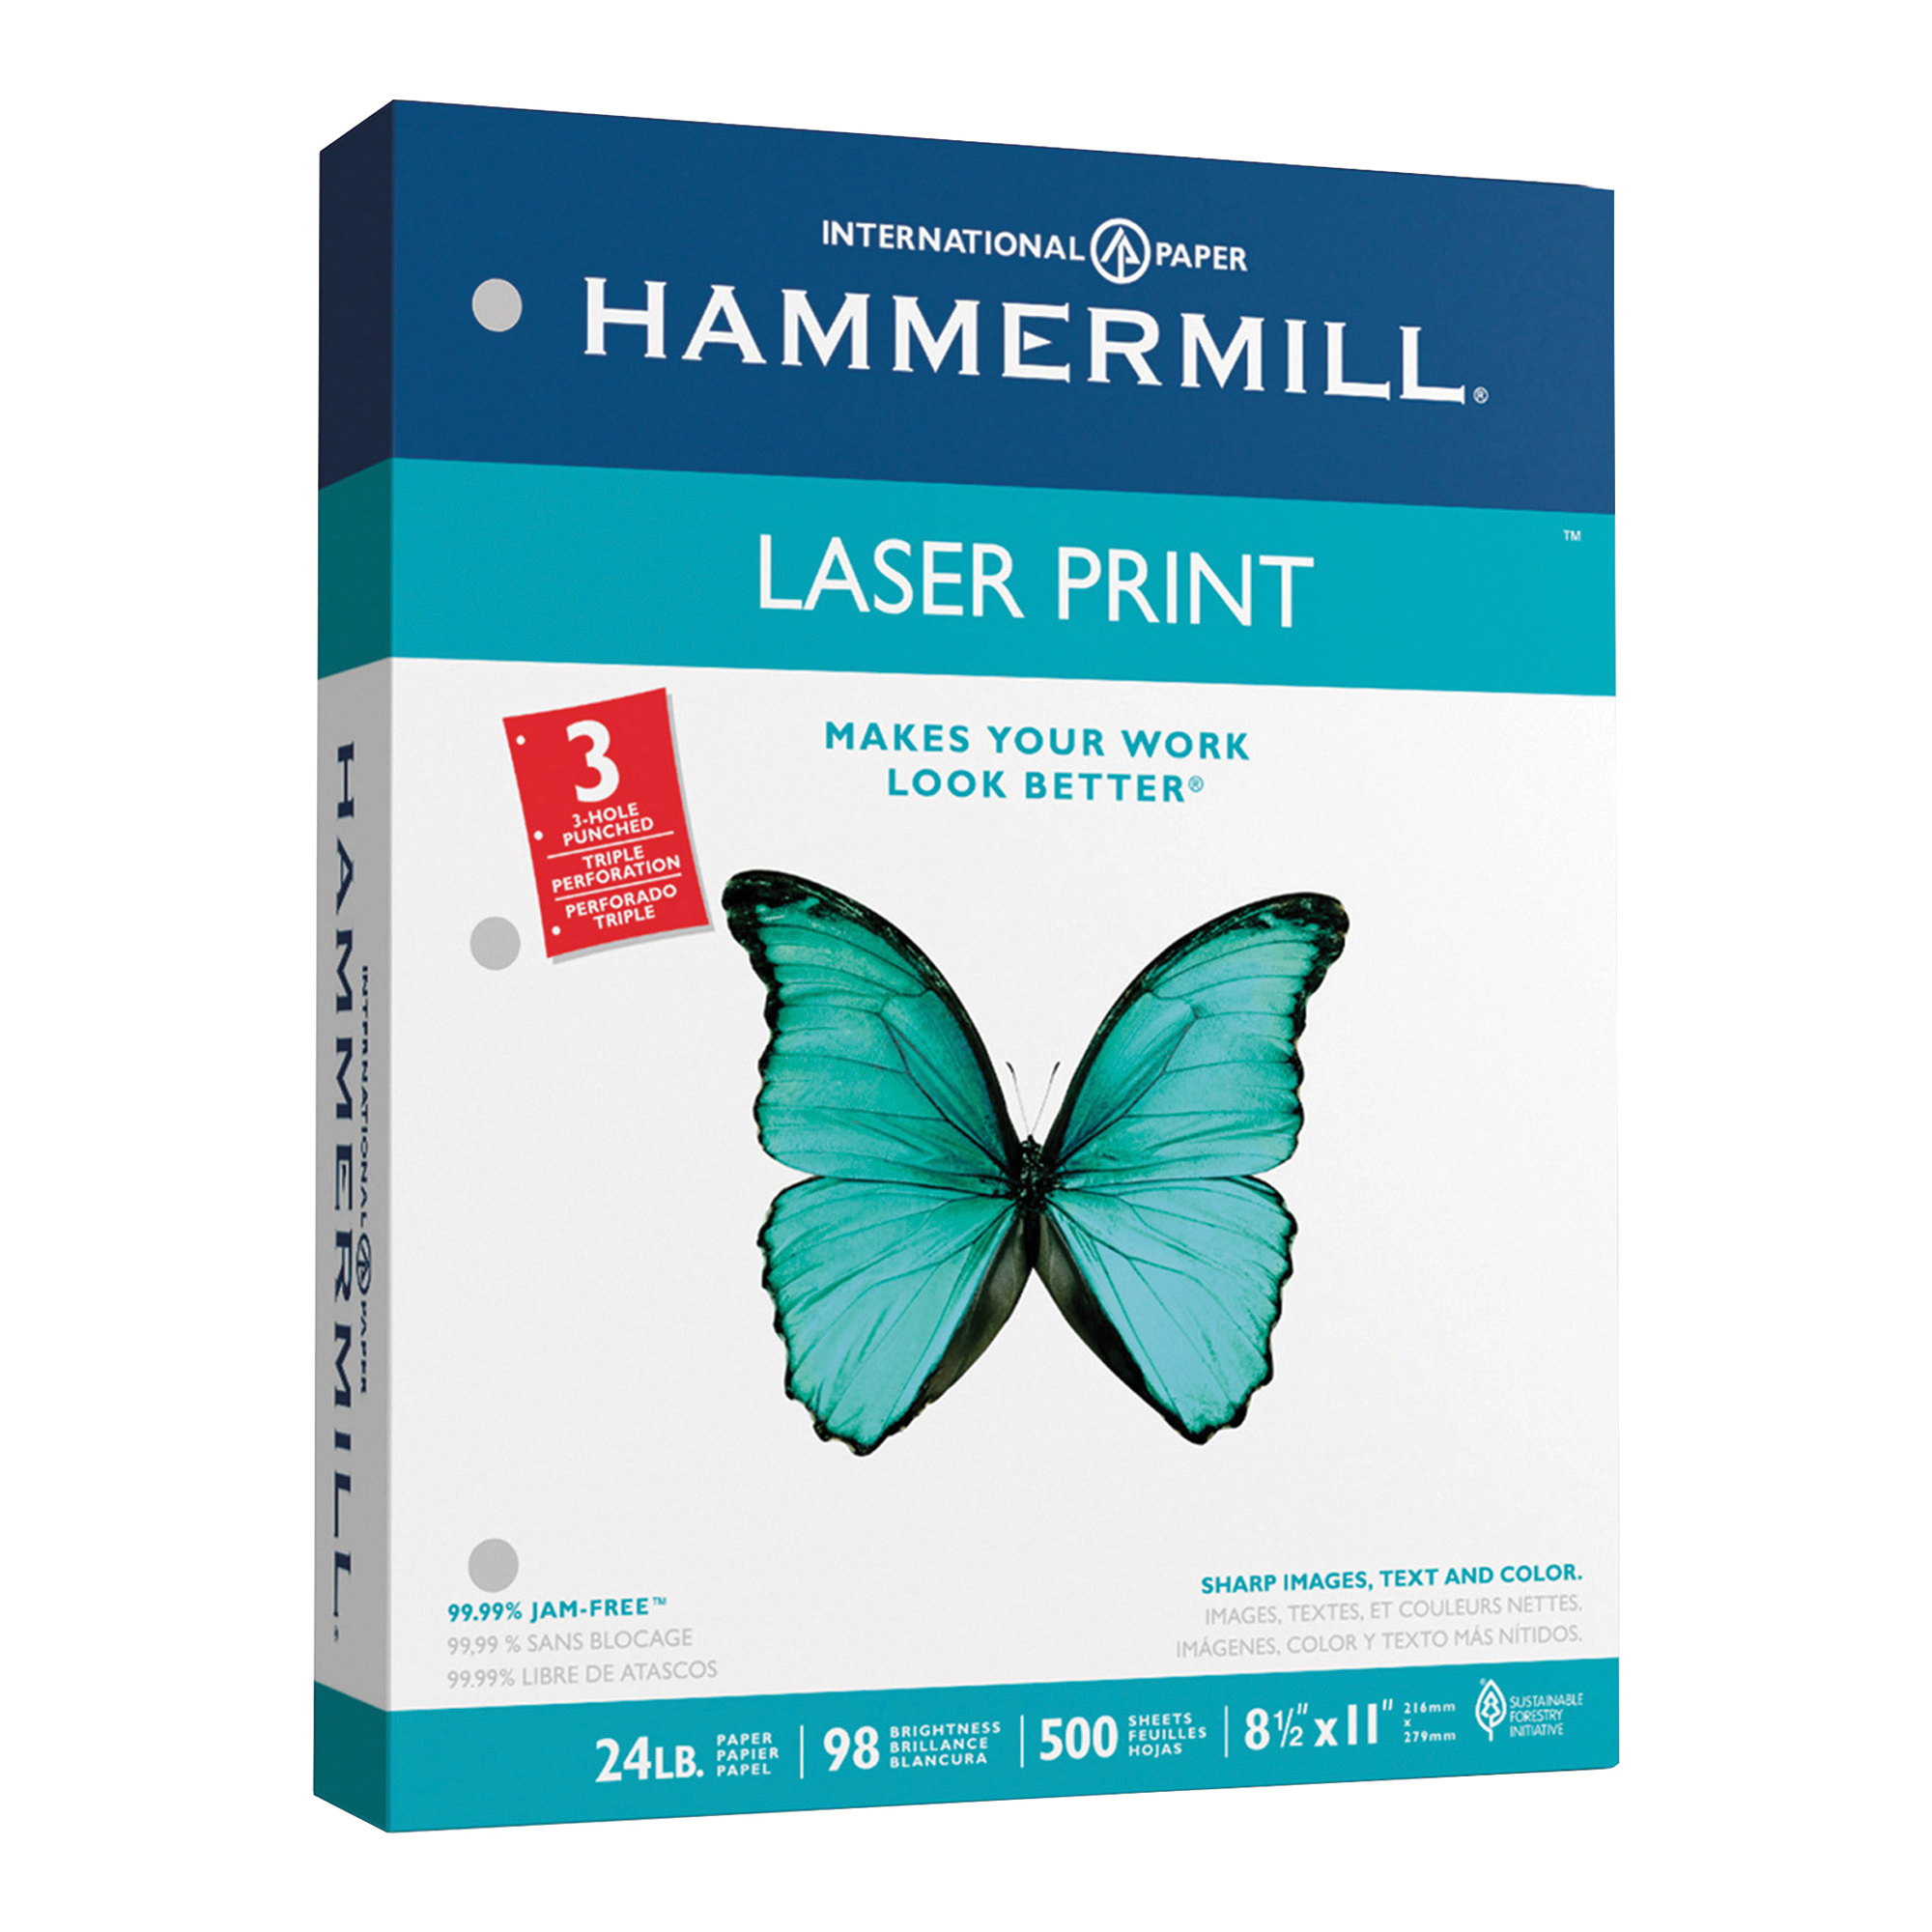 Hammermill Laser Paper, 8.5 x 11 In, 24lb, 3 Hole Punched, 500 sheets (107681)